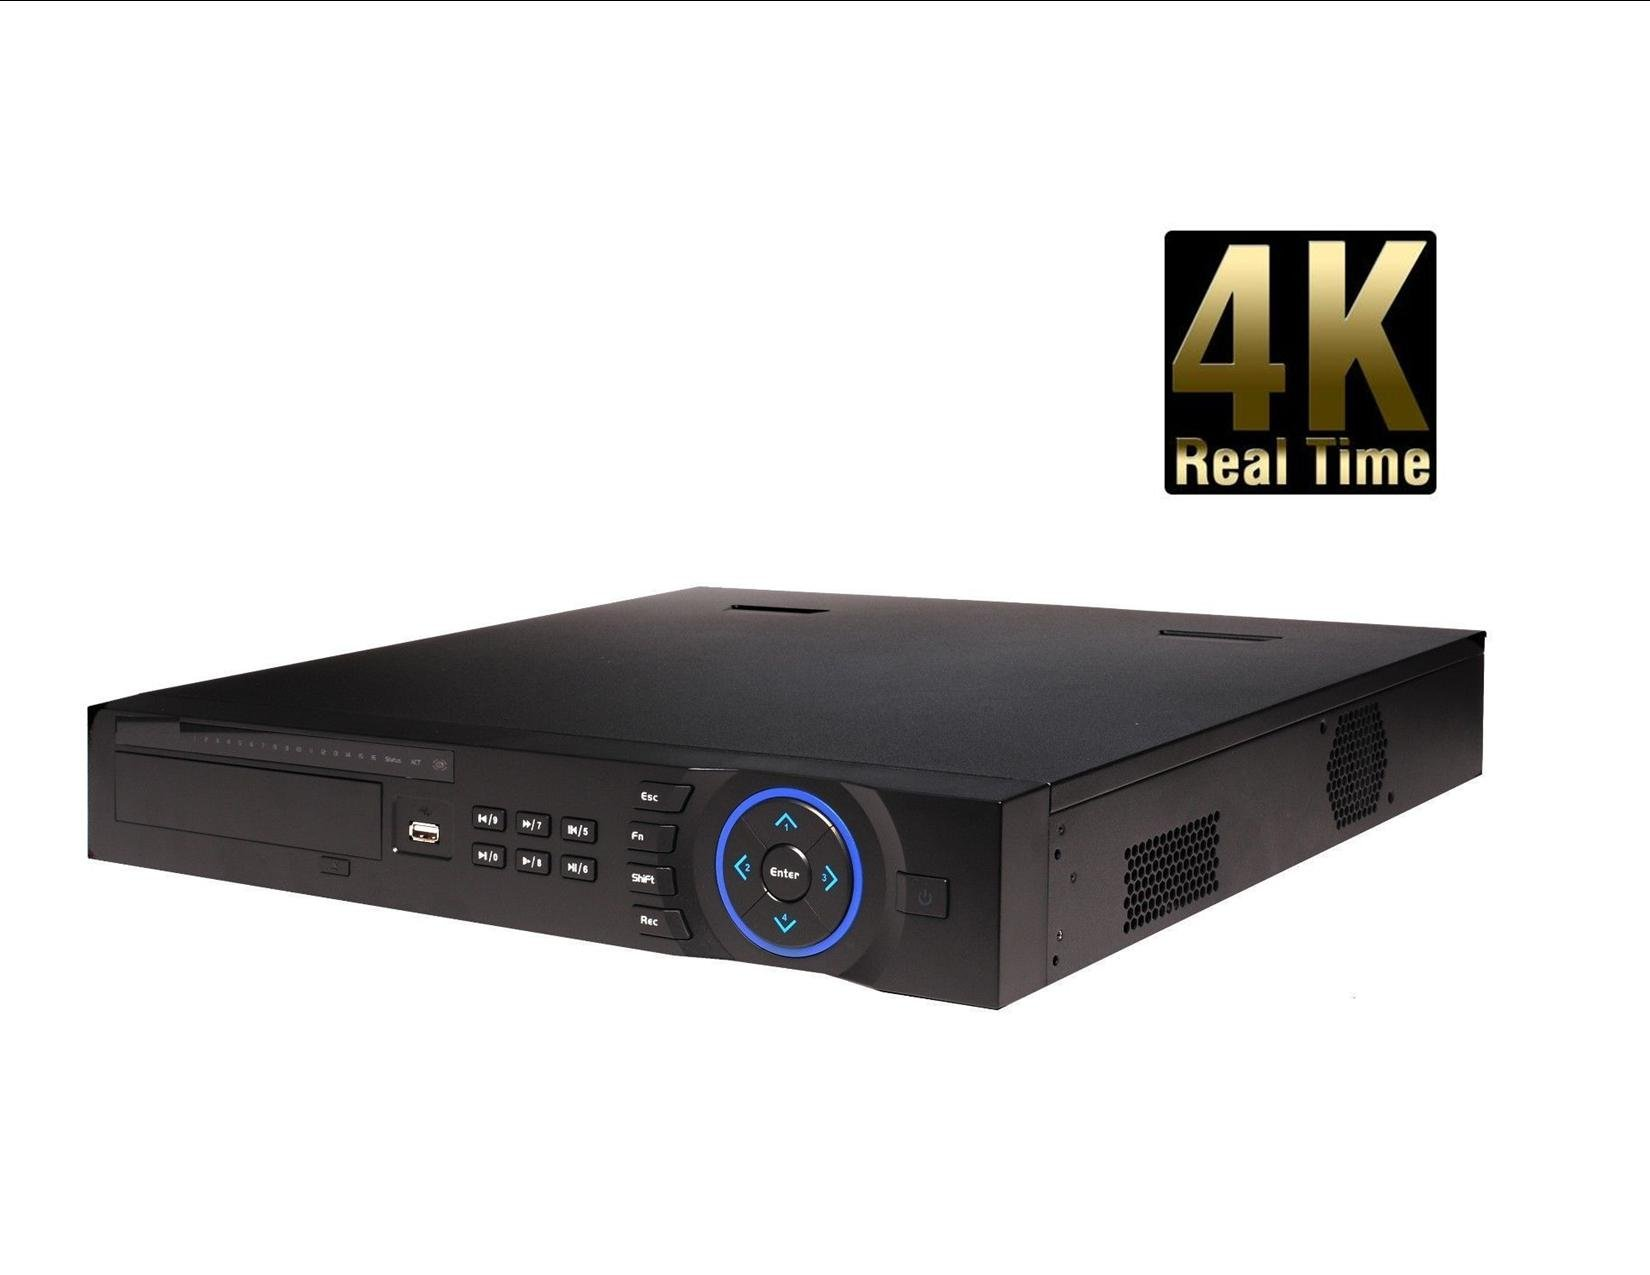 DAHUA 4K NVR4416-16P-4K 1.5U Network video recorder with 16POE Onvif 2.4 Support 4HDD DAHUA 4K NVR Network video recorder